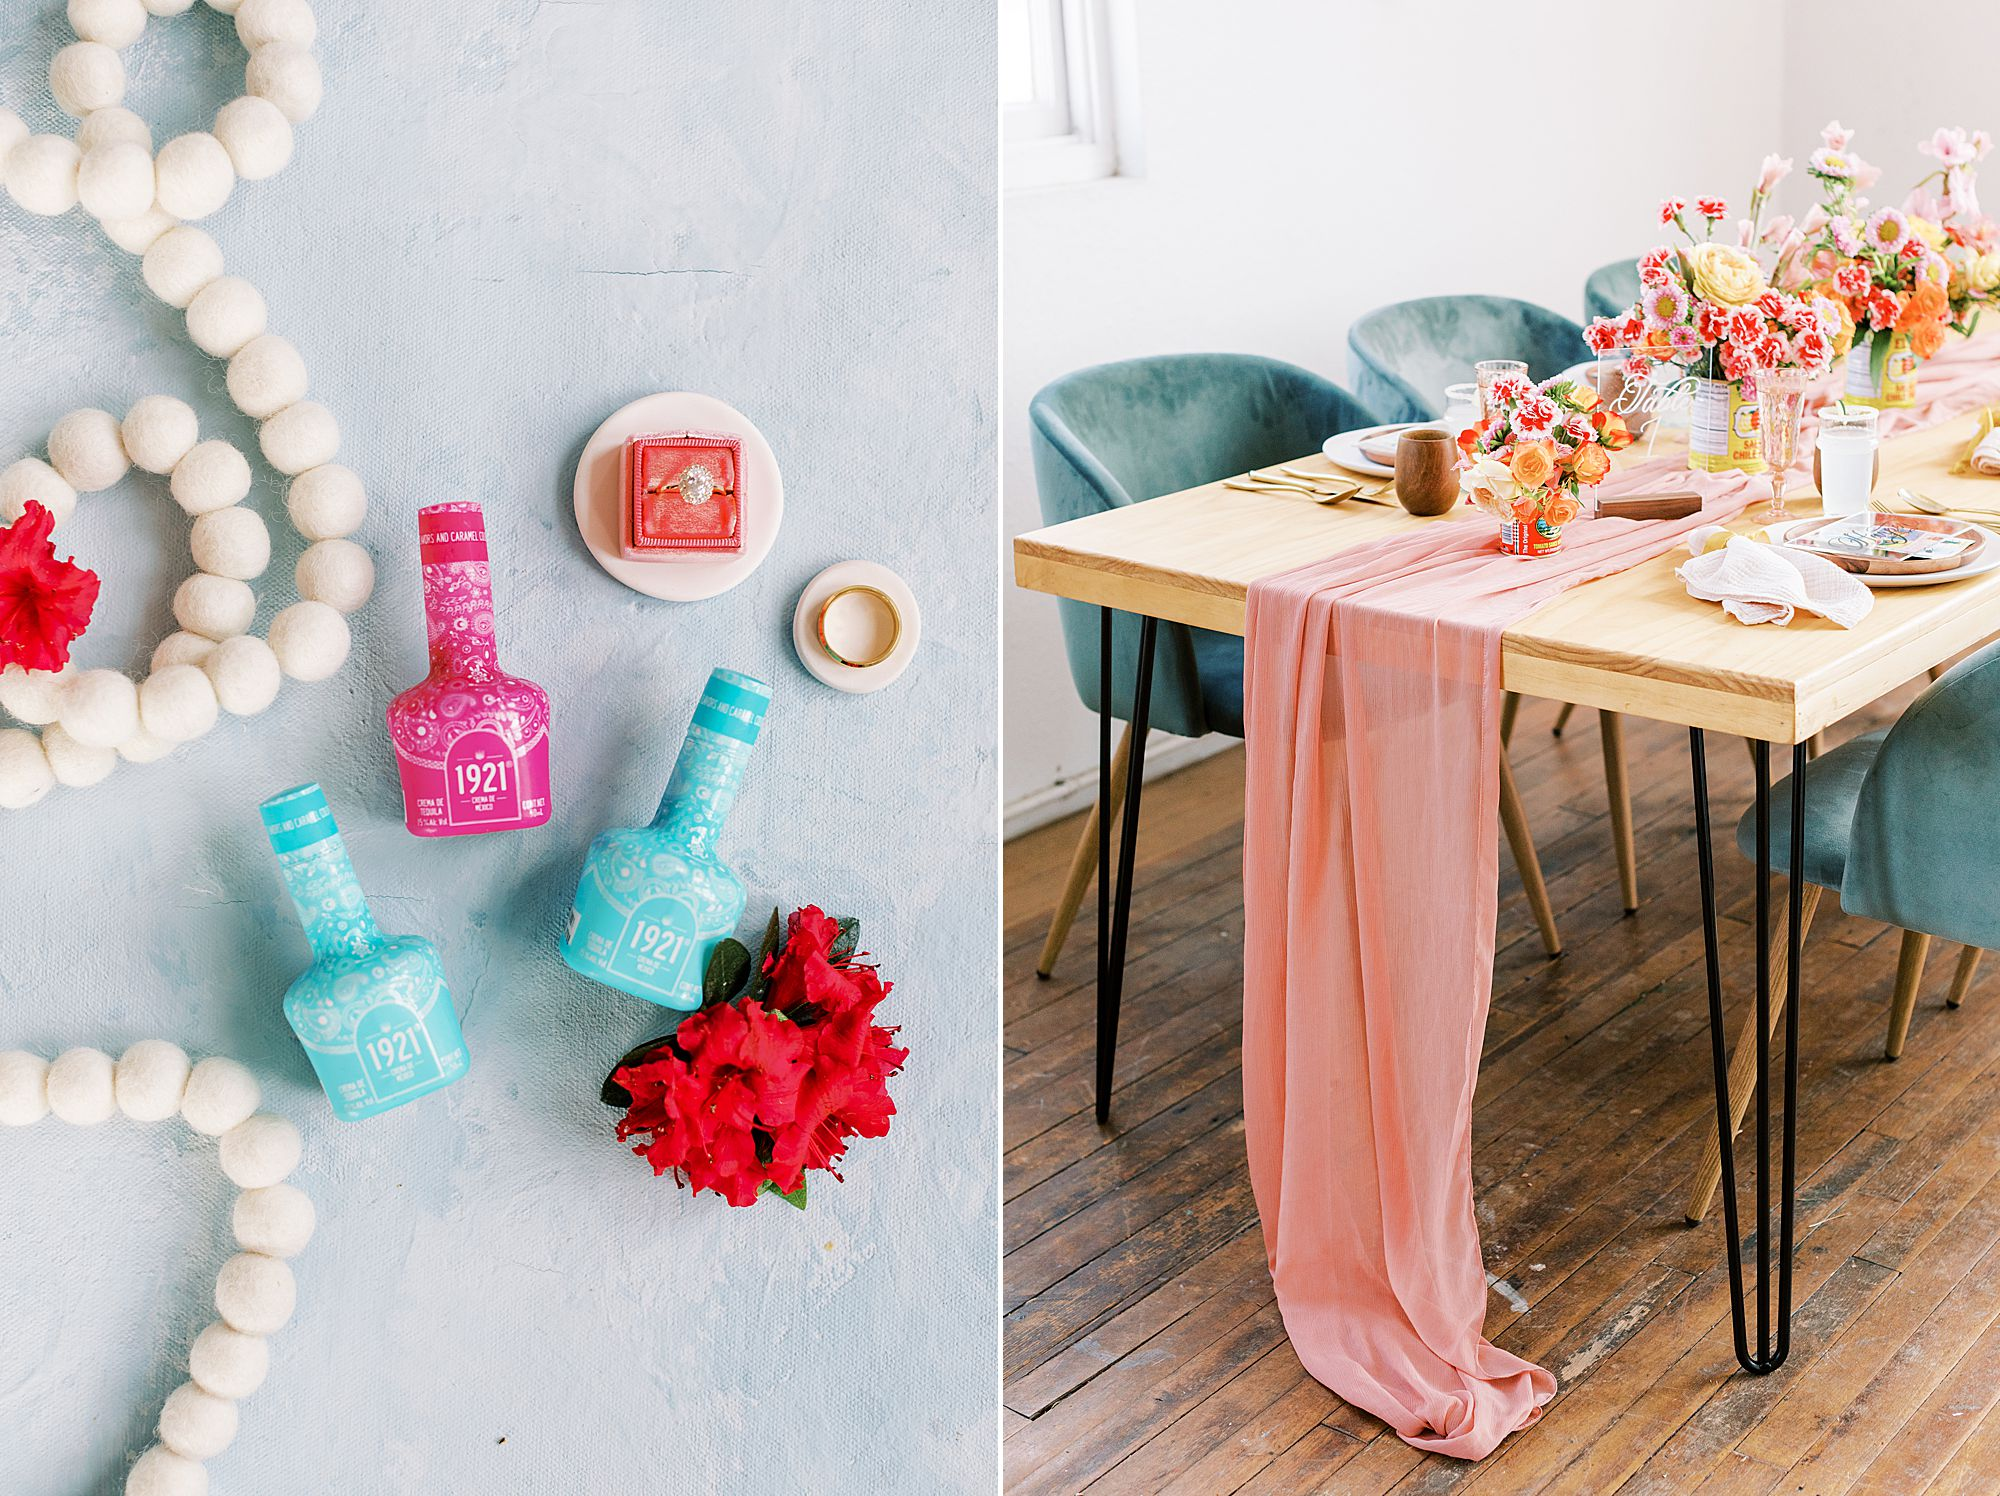 Cinco De Mayo Inspiration for Your FIesta - Party Crush Studio and Ashley Baumgartner_0049.jpg